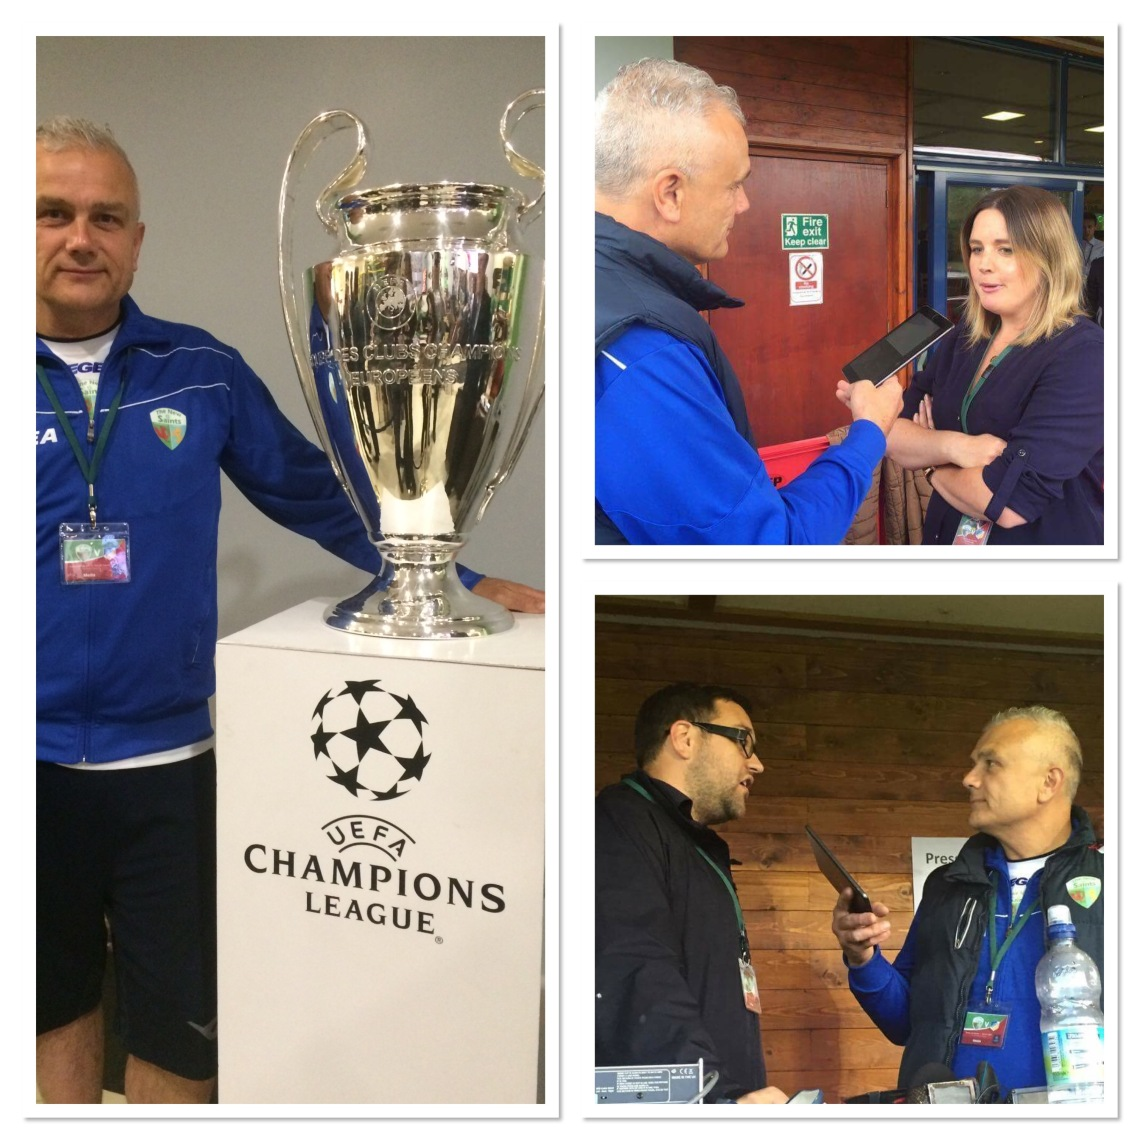 At Park Hall this week with the CL trophy and interviewing